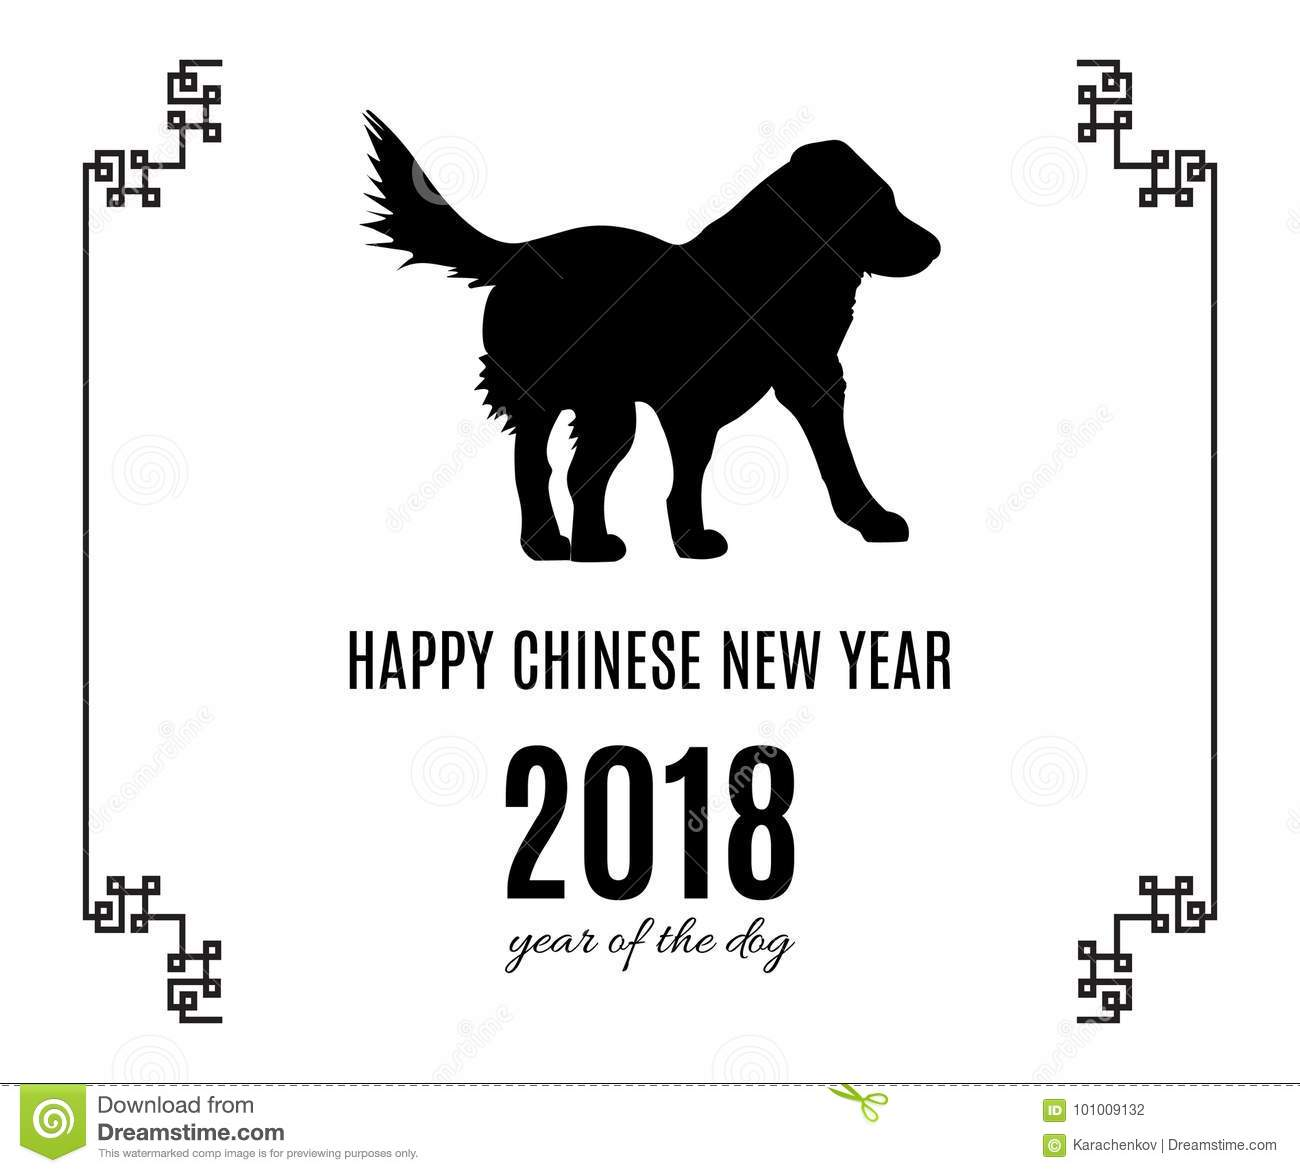 happy chinese new year 2018 greeting card with dog